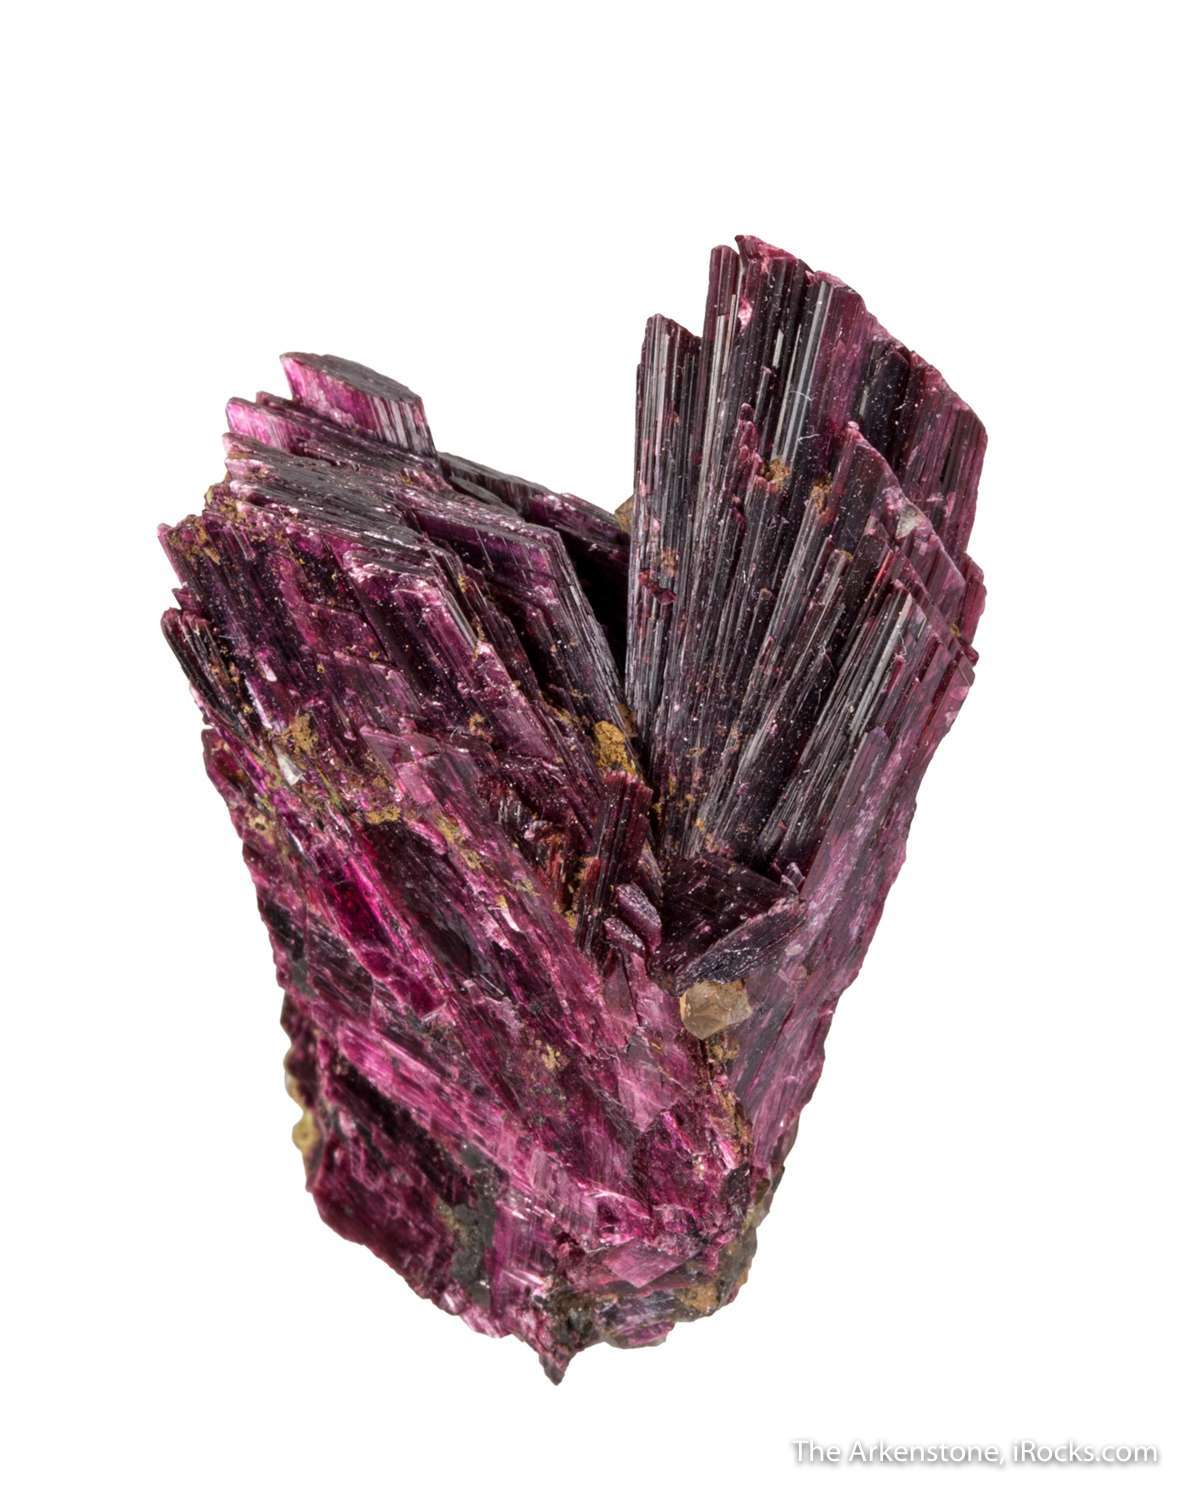 A significant miniature locality HUGE extremely robust crystals